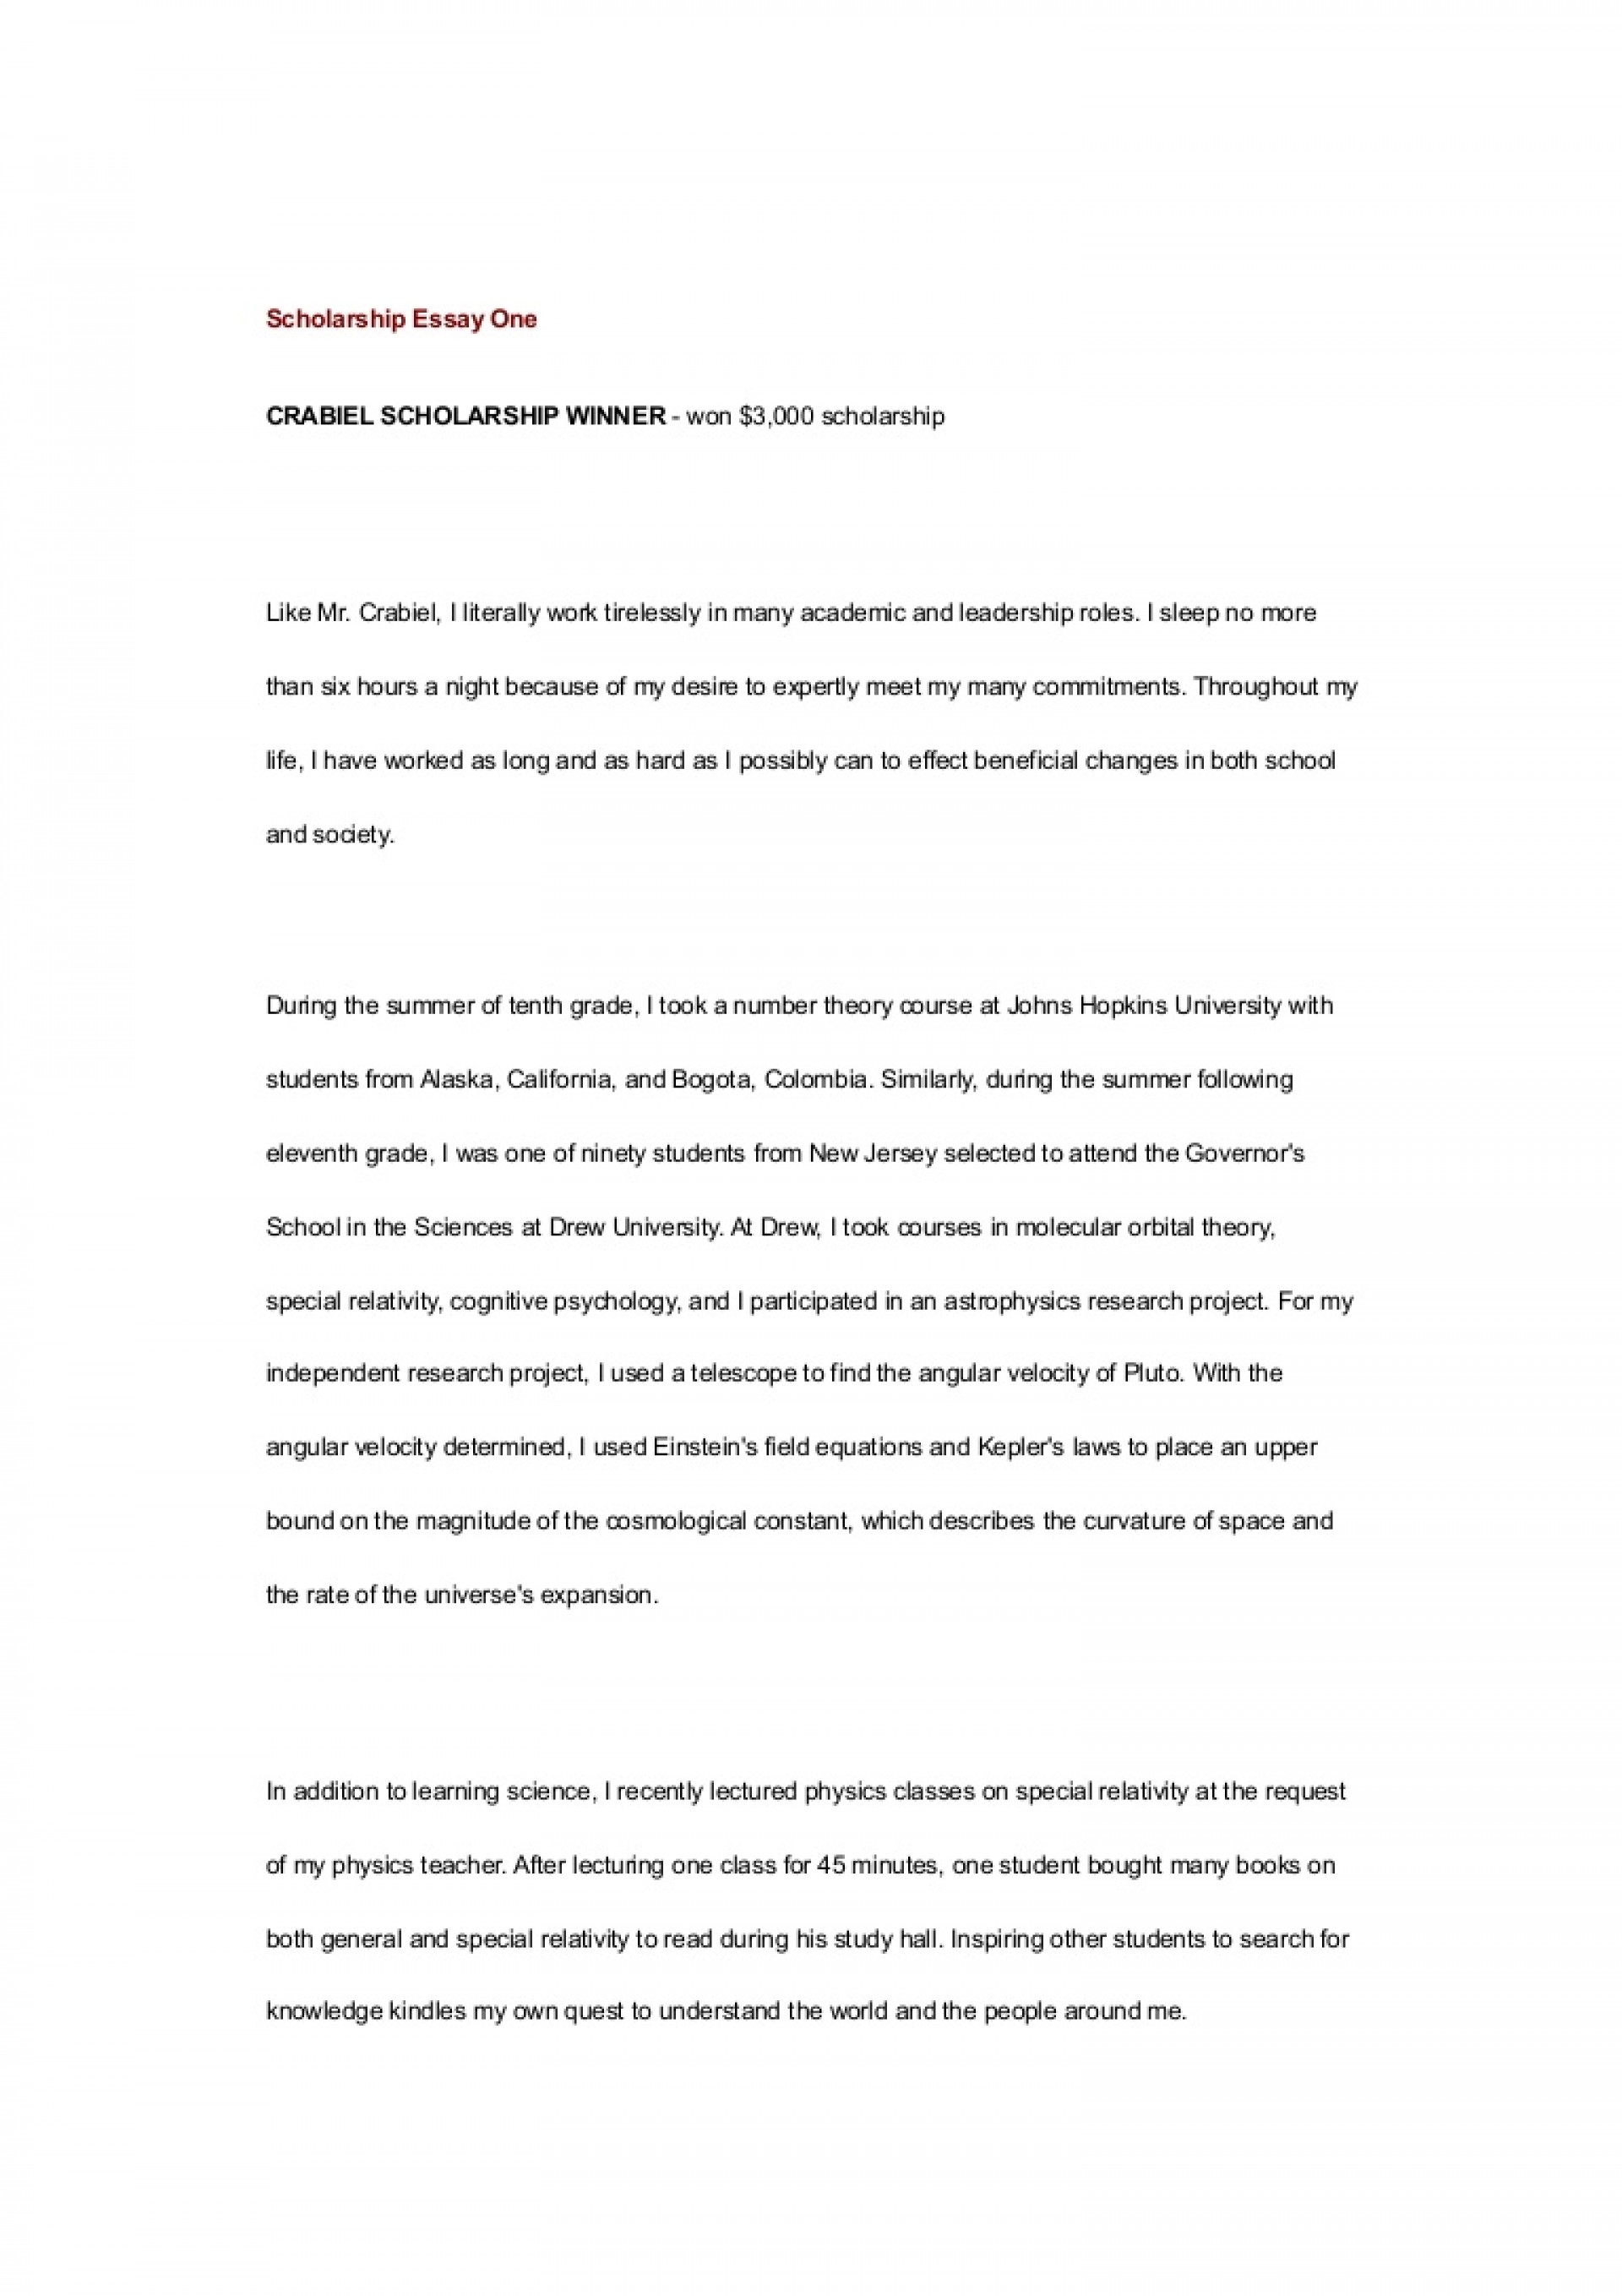 008 Examples Of Scholarship Essays Scholarshipessayone Phpapp01 Thumbnail Essay Remarkable For Nursing Writing College Students A About Yourself 1920